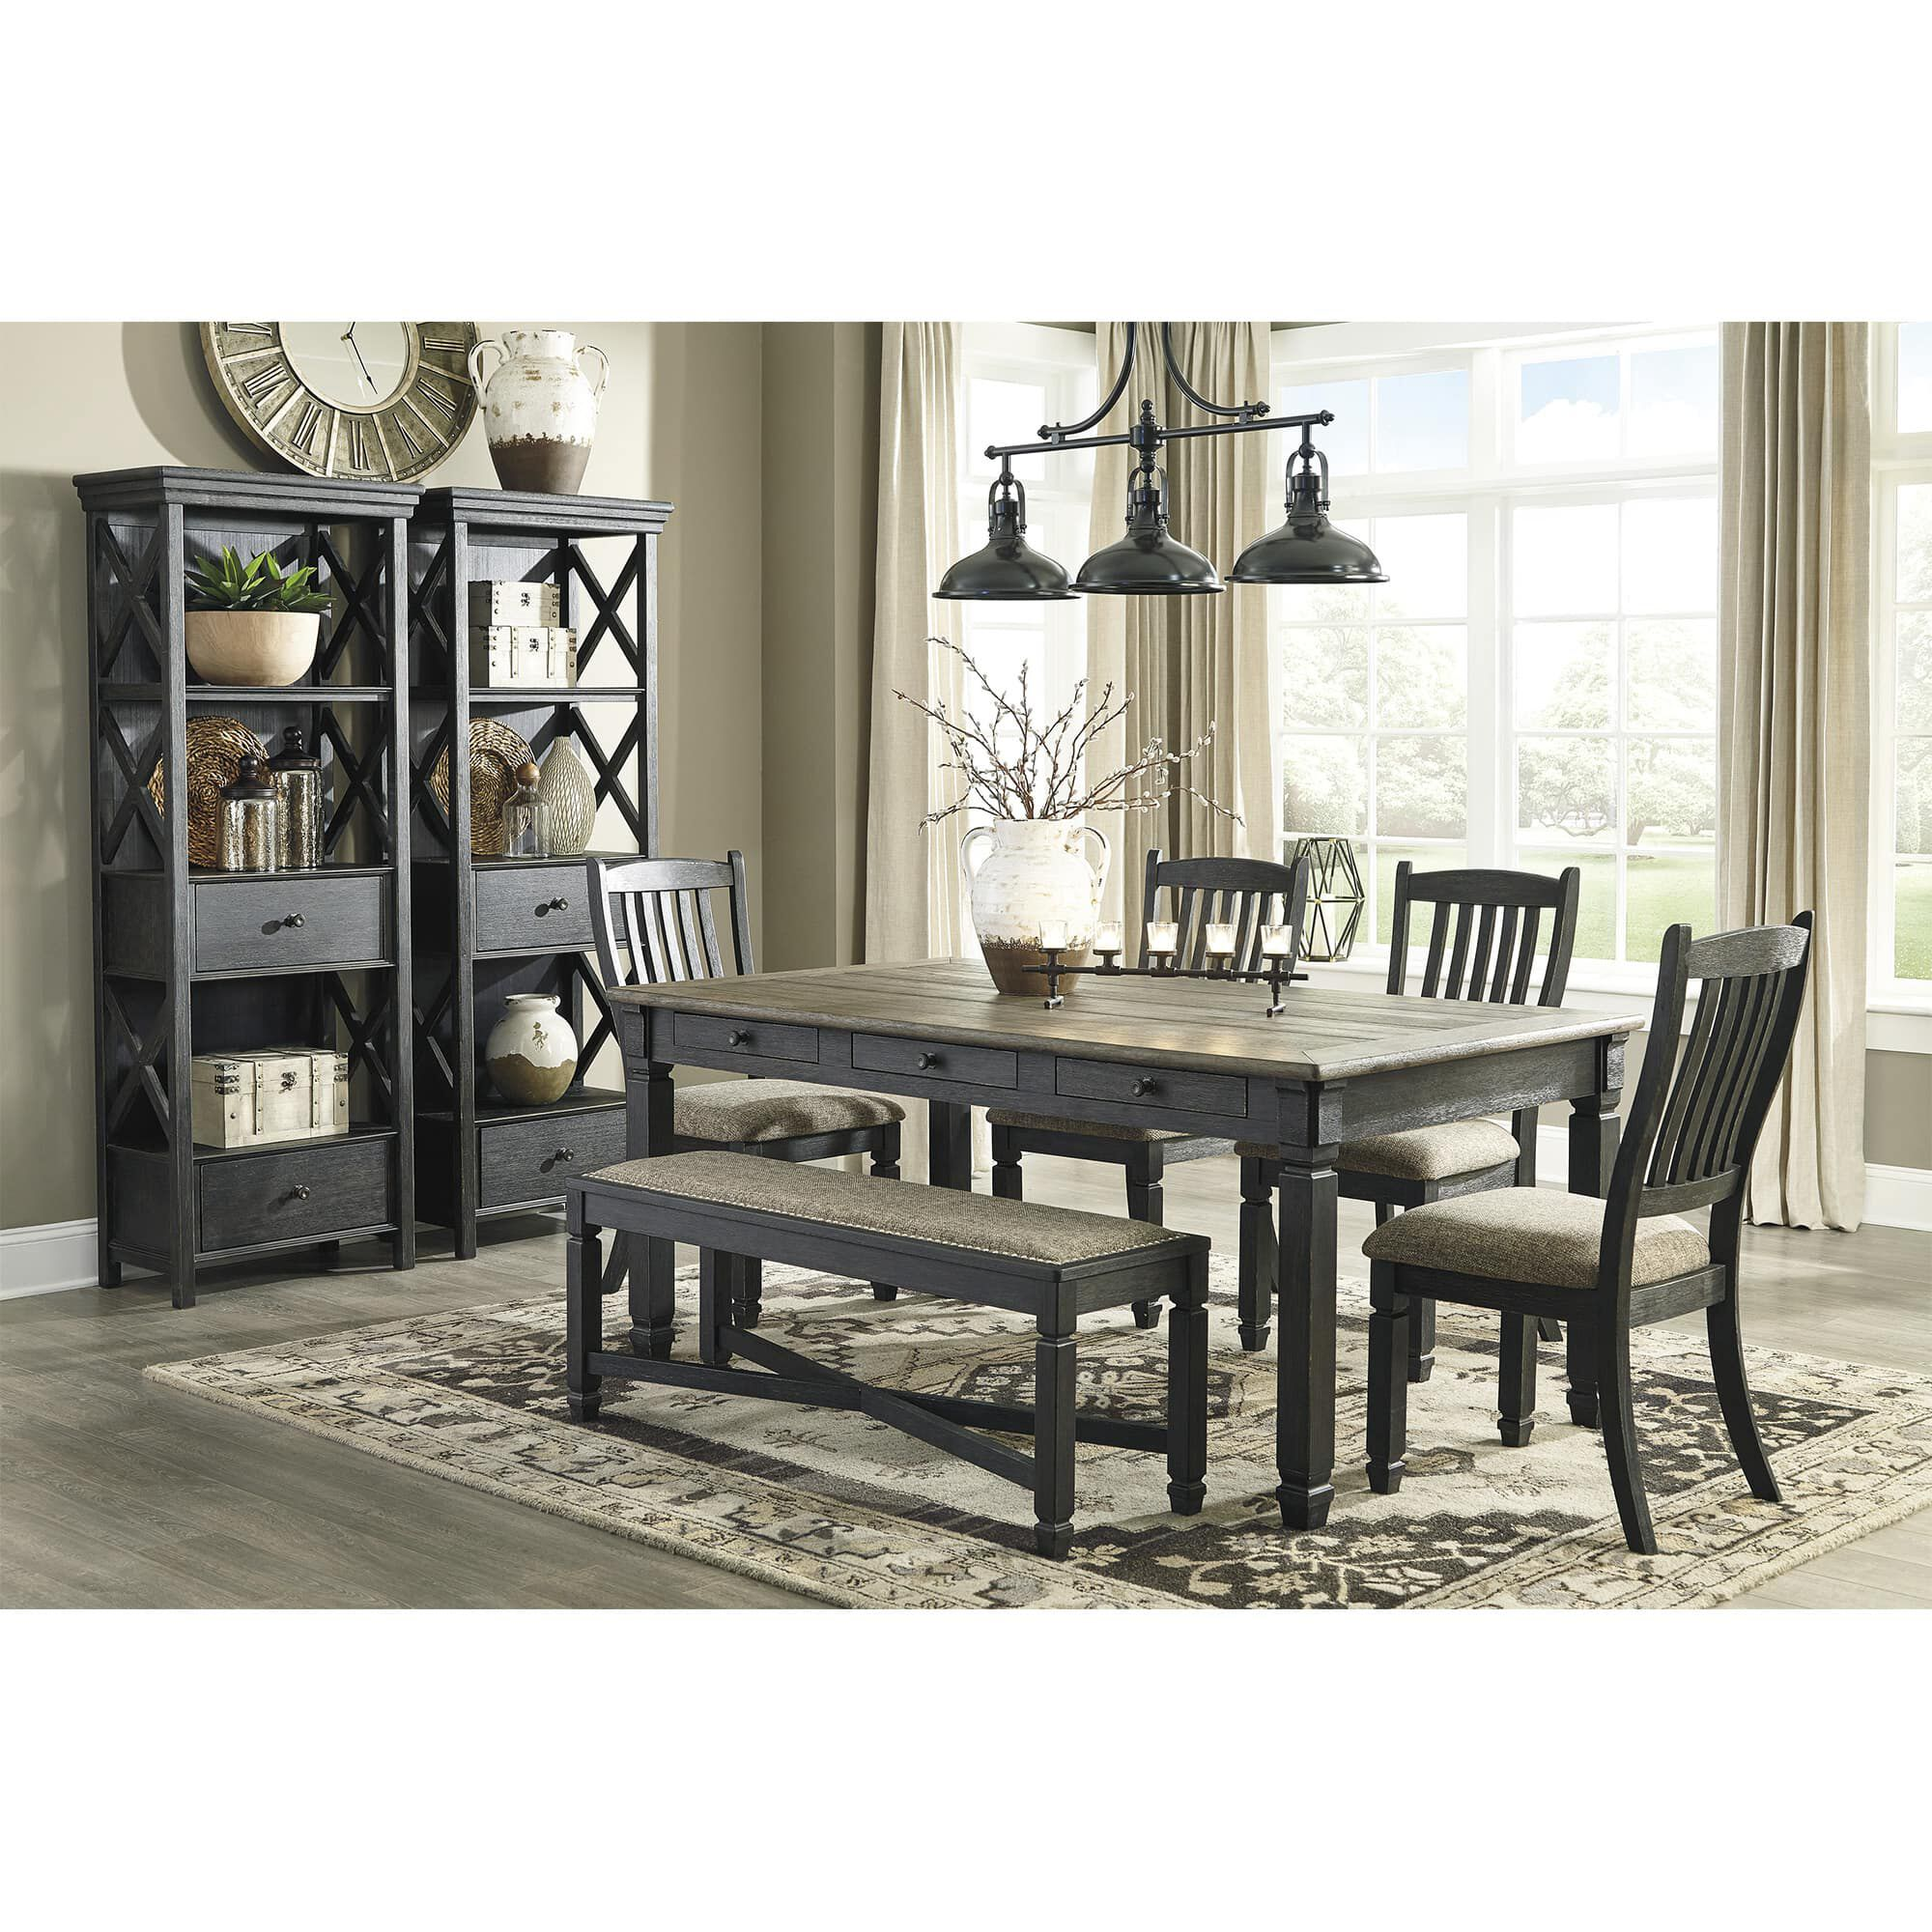 Juegos De Comedores 8 Piece Tyler Creek Dining Room With Display Cabinets